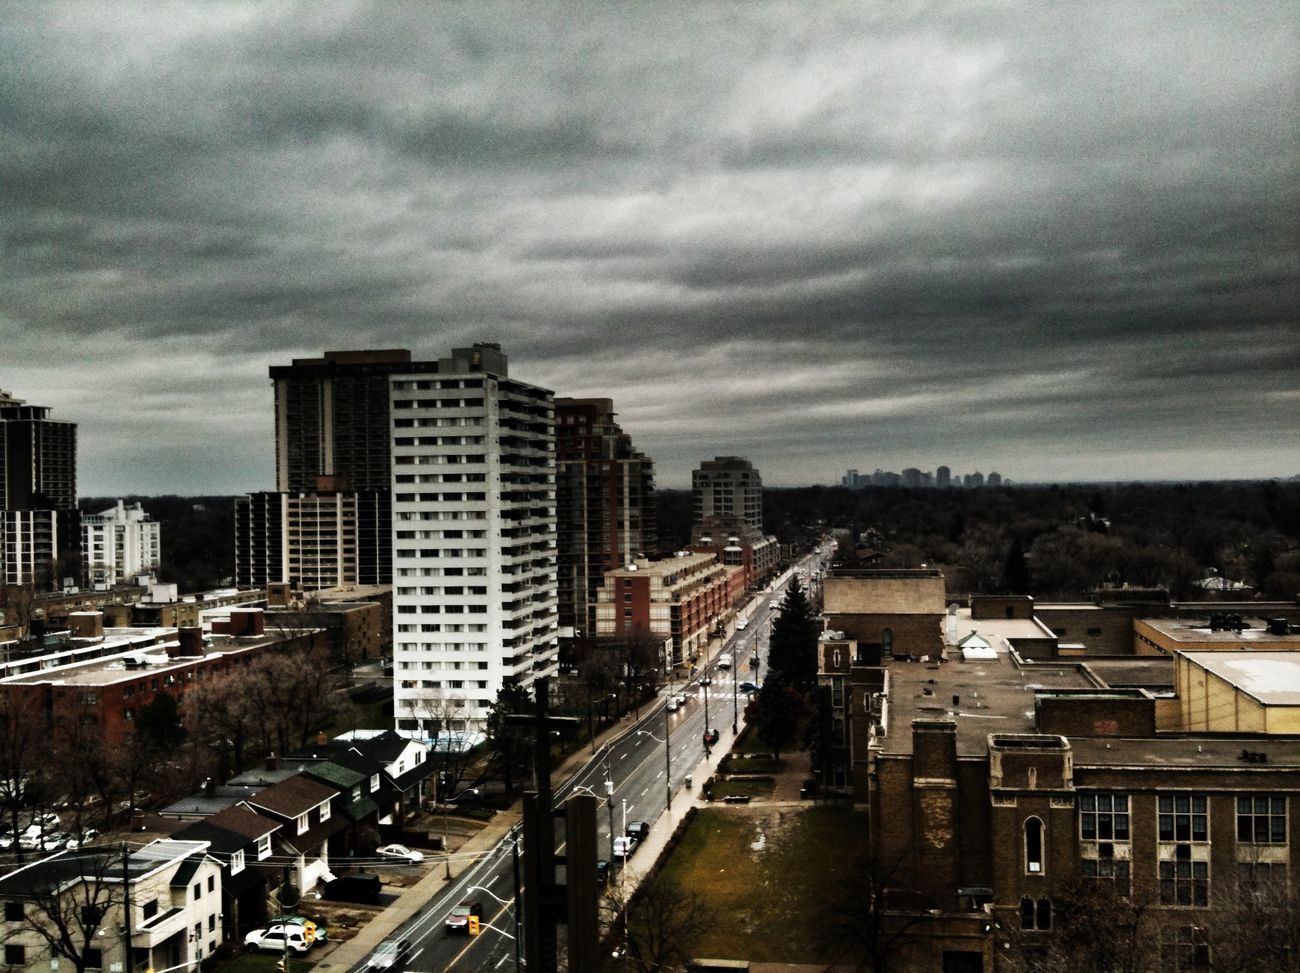 #iphoneography #malditoiphone #Mount Pleasant